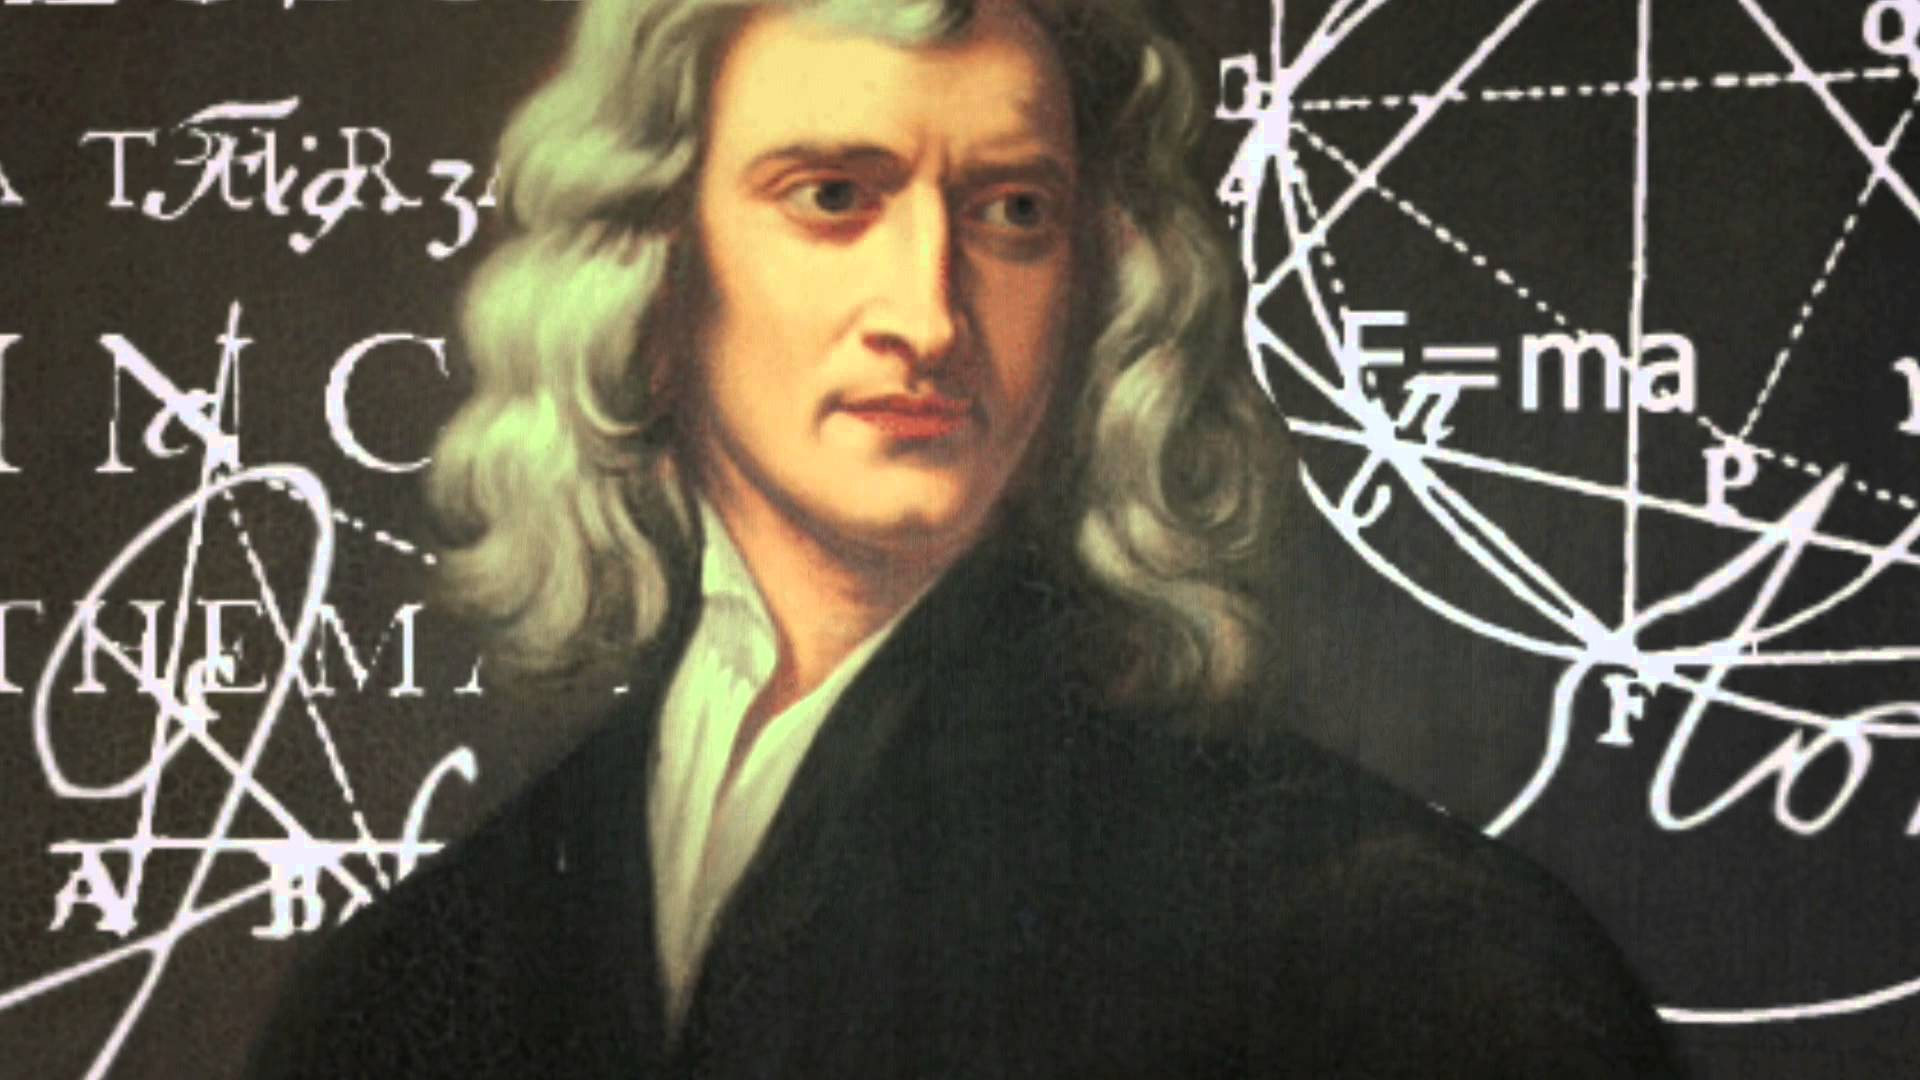 Download Wallpapers Of Good Quotes Giving Like Newton Capital Research Center